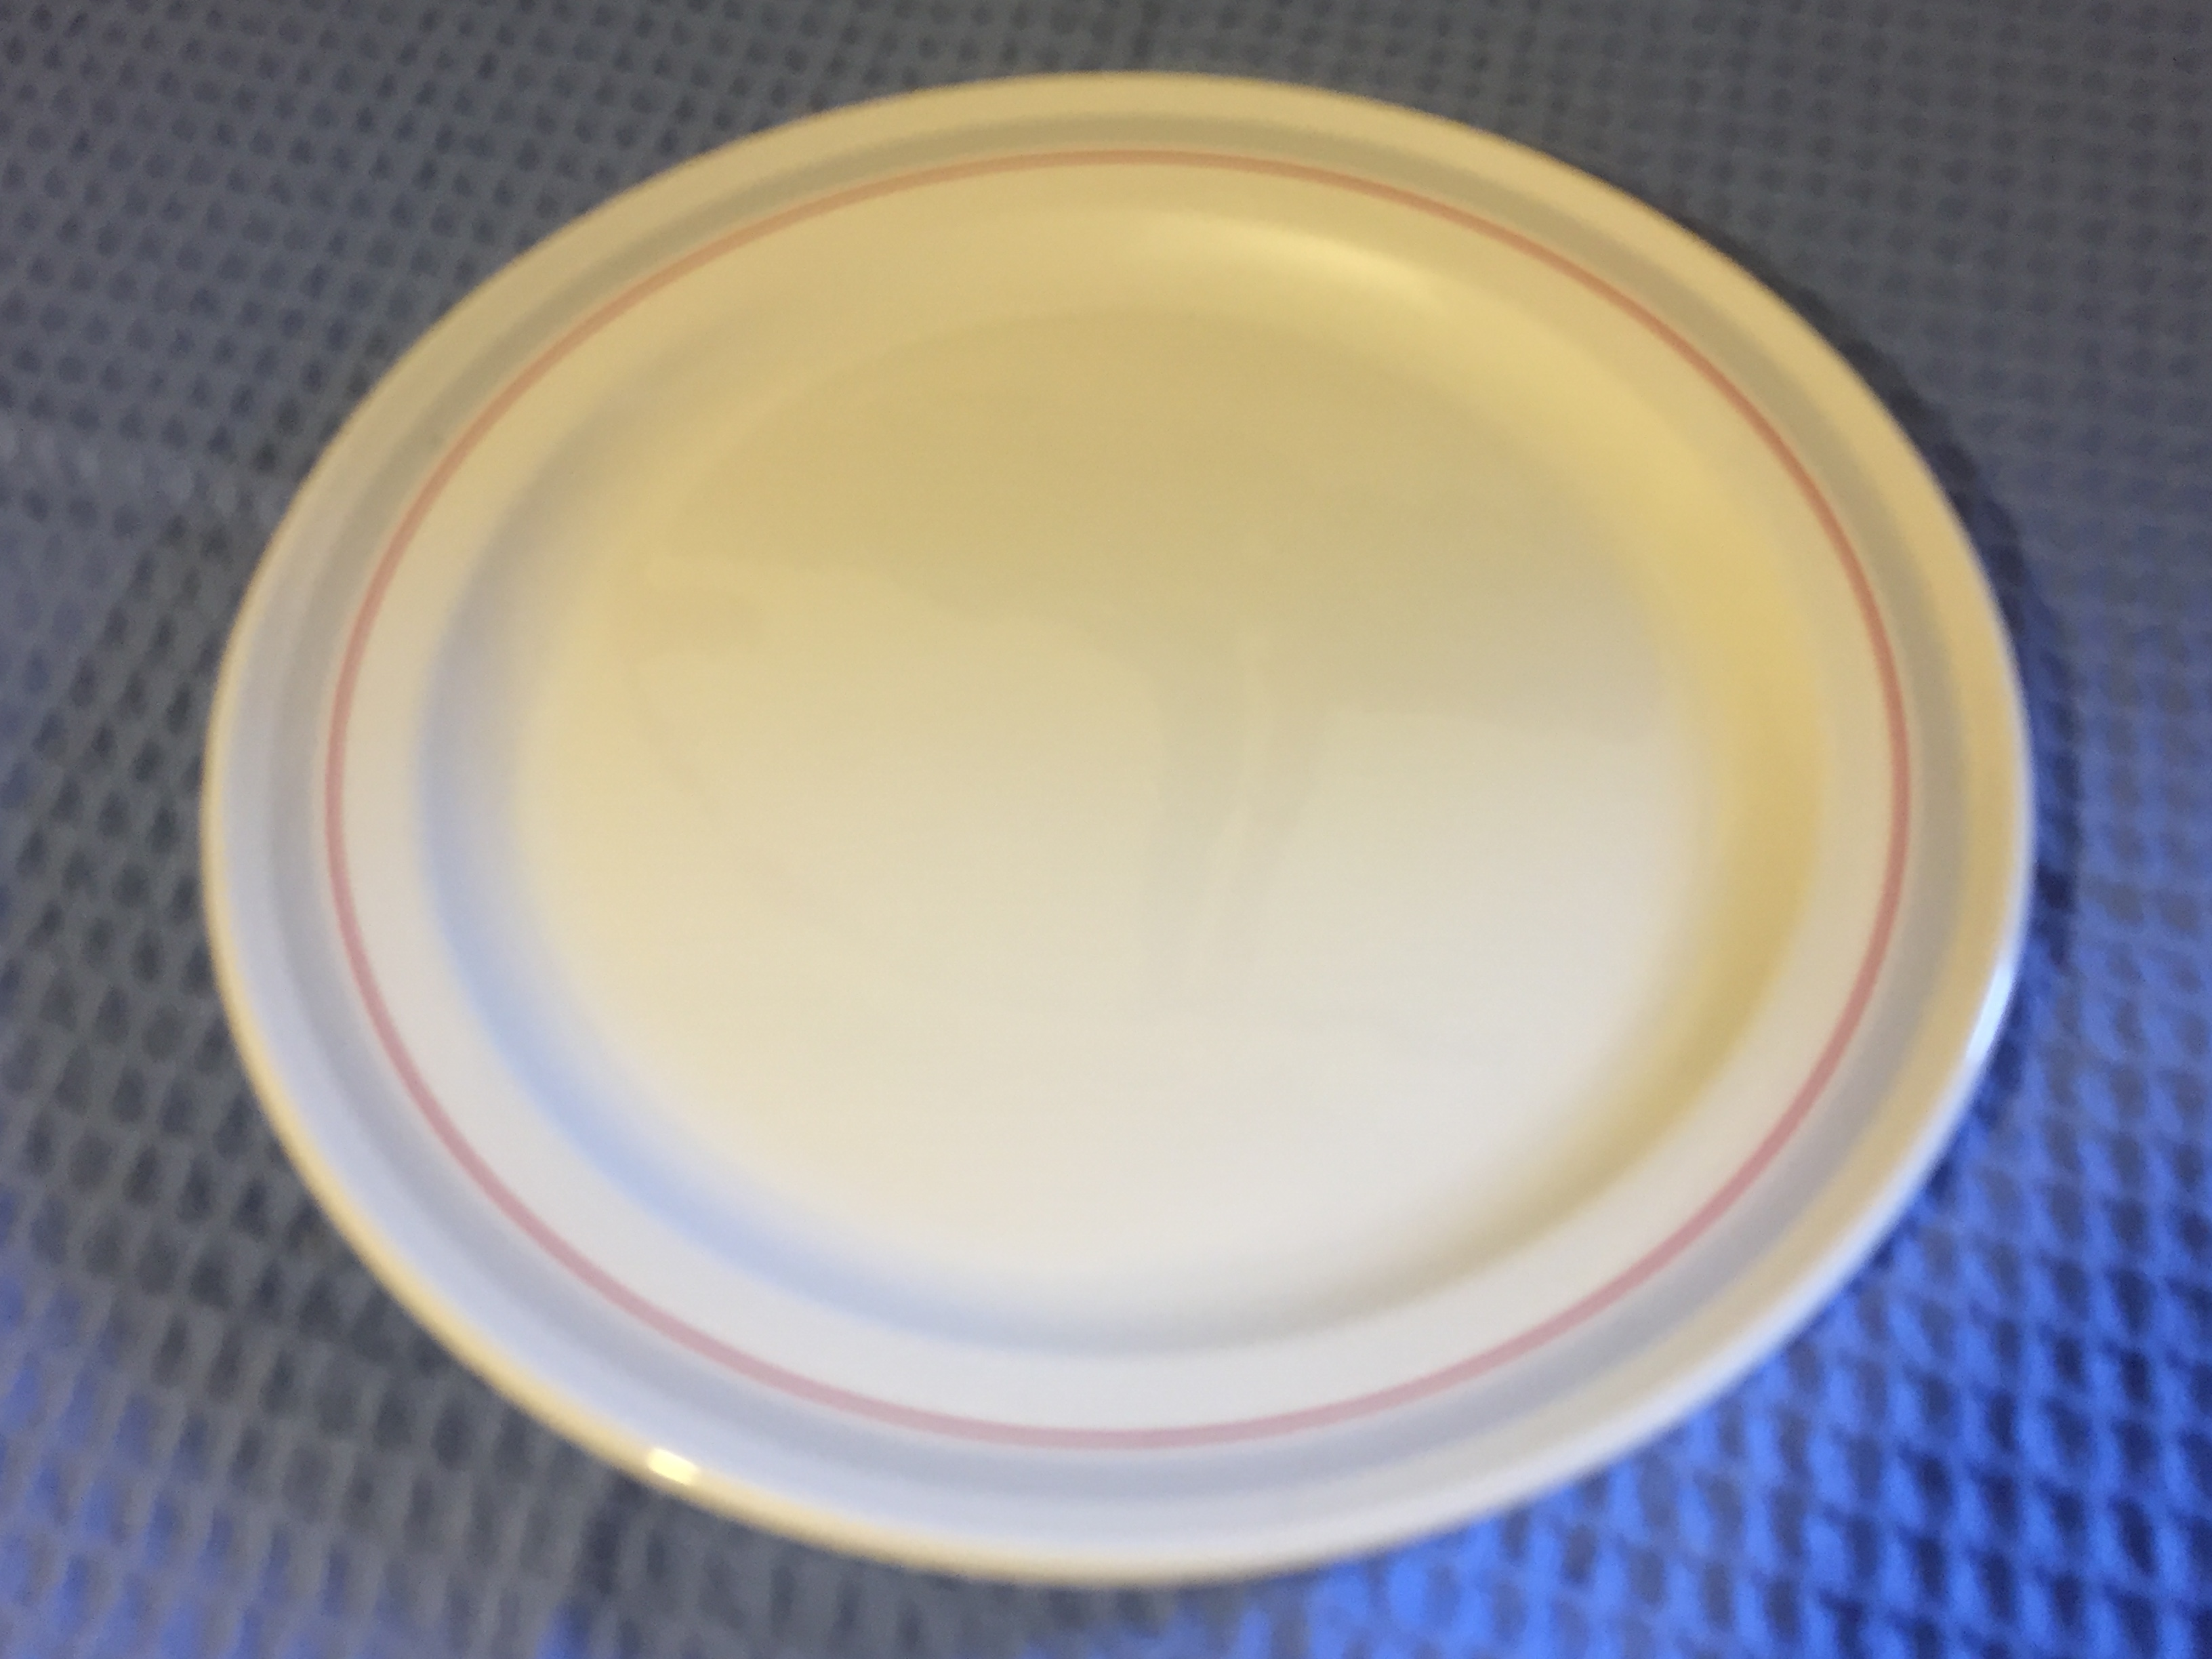 CANADIAN PACIFIC DINING PLATE AS USED IN SERVICE